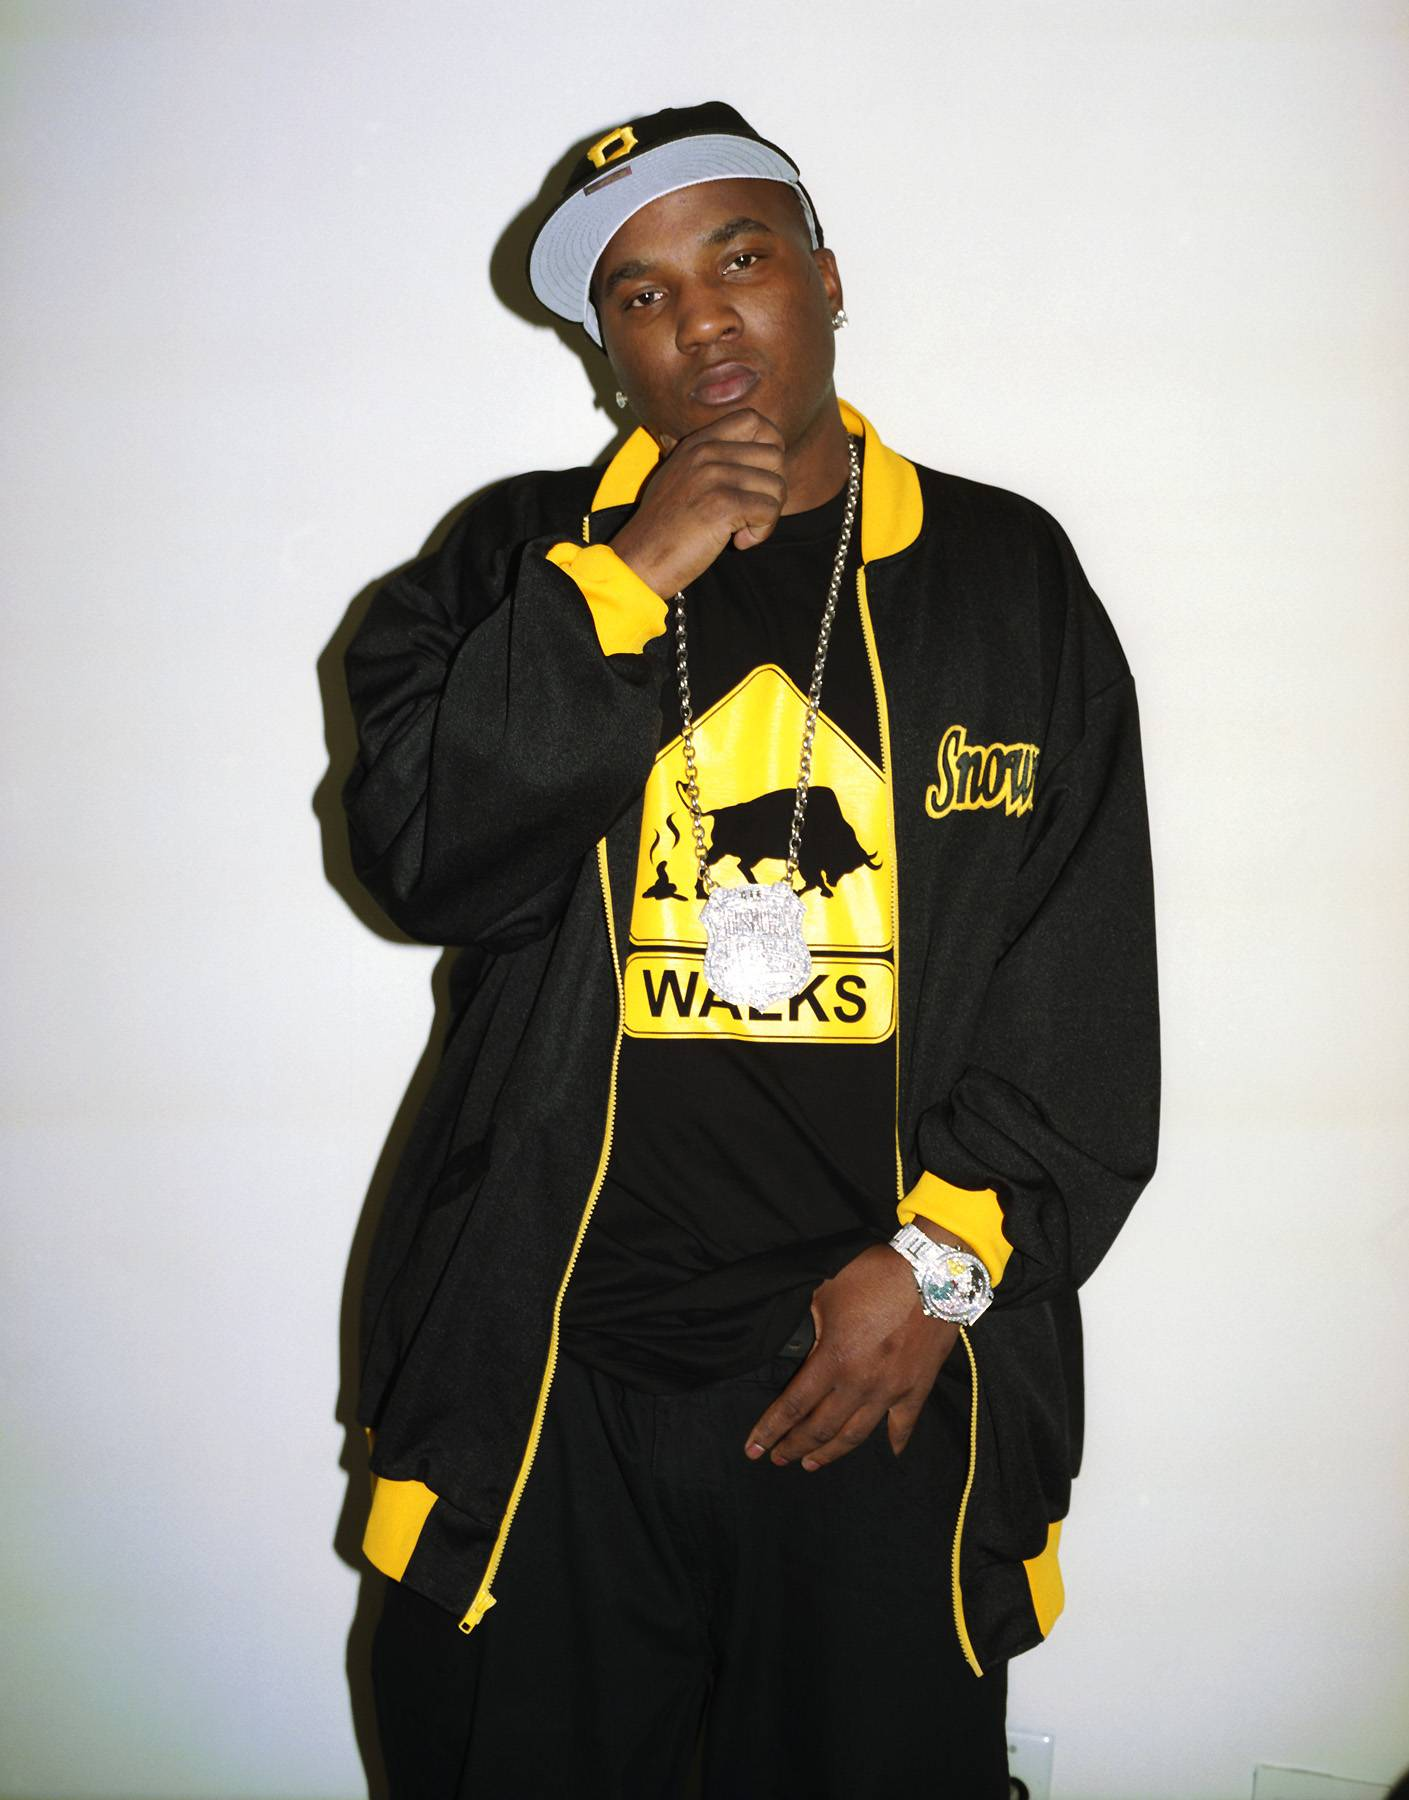 From the Bottom of the Map - Born in North Carolina on Sept. 28, 1977, Jay Wayne Jenkins better known by his stage name, Young Jeezy moved to Atlanta when he was still baby Jeezy. Due to a difficult upbringing, he fell into the street life and even did a stint in boot camp for narcotics possession. But he didn?t let his street smarts go to waste, he was determined to become a successful businessman.(Photo: Jason Nocito/Corbis)